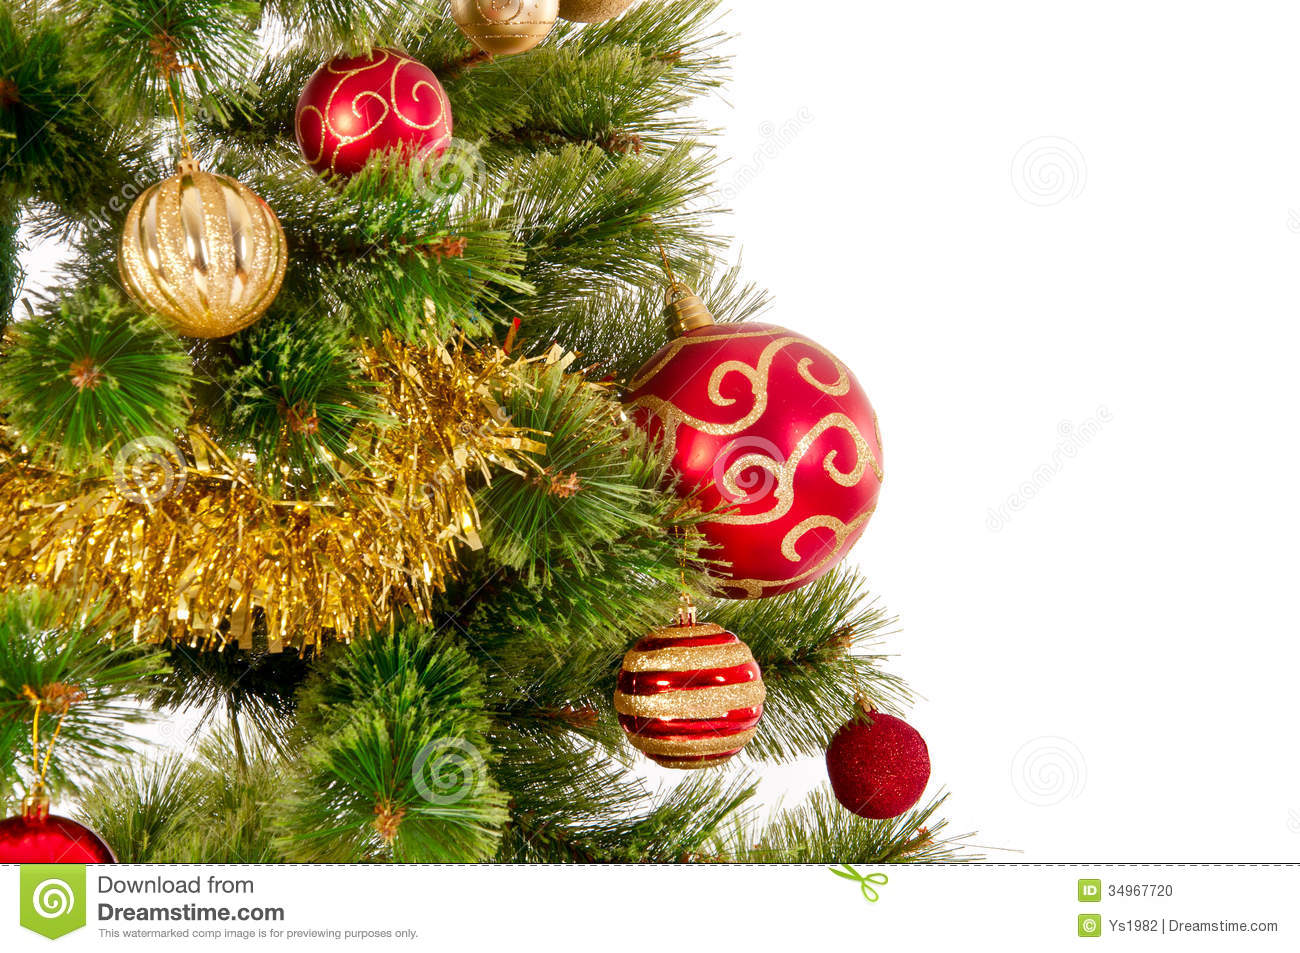 Decorated Christmas Tree Images : Decorated christmas tree on white background stock photo